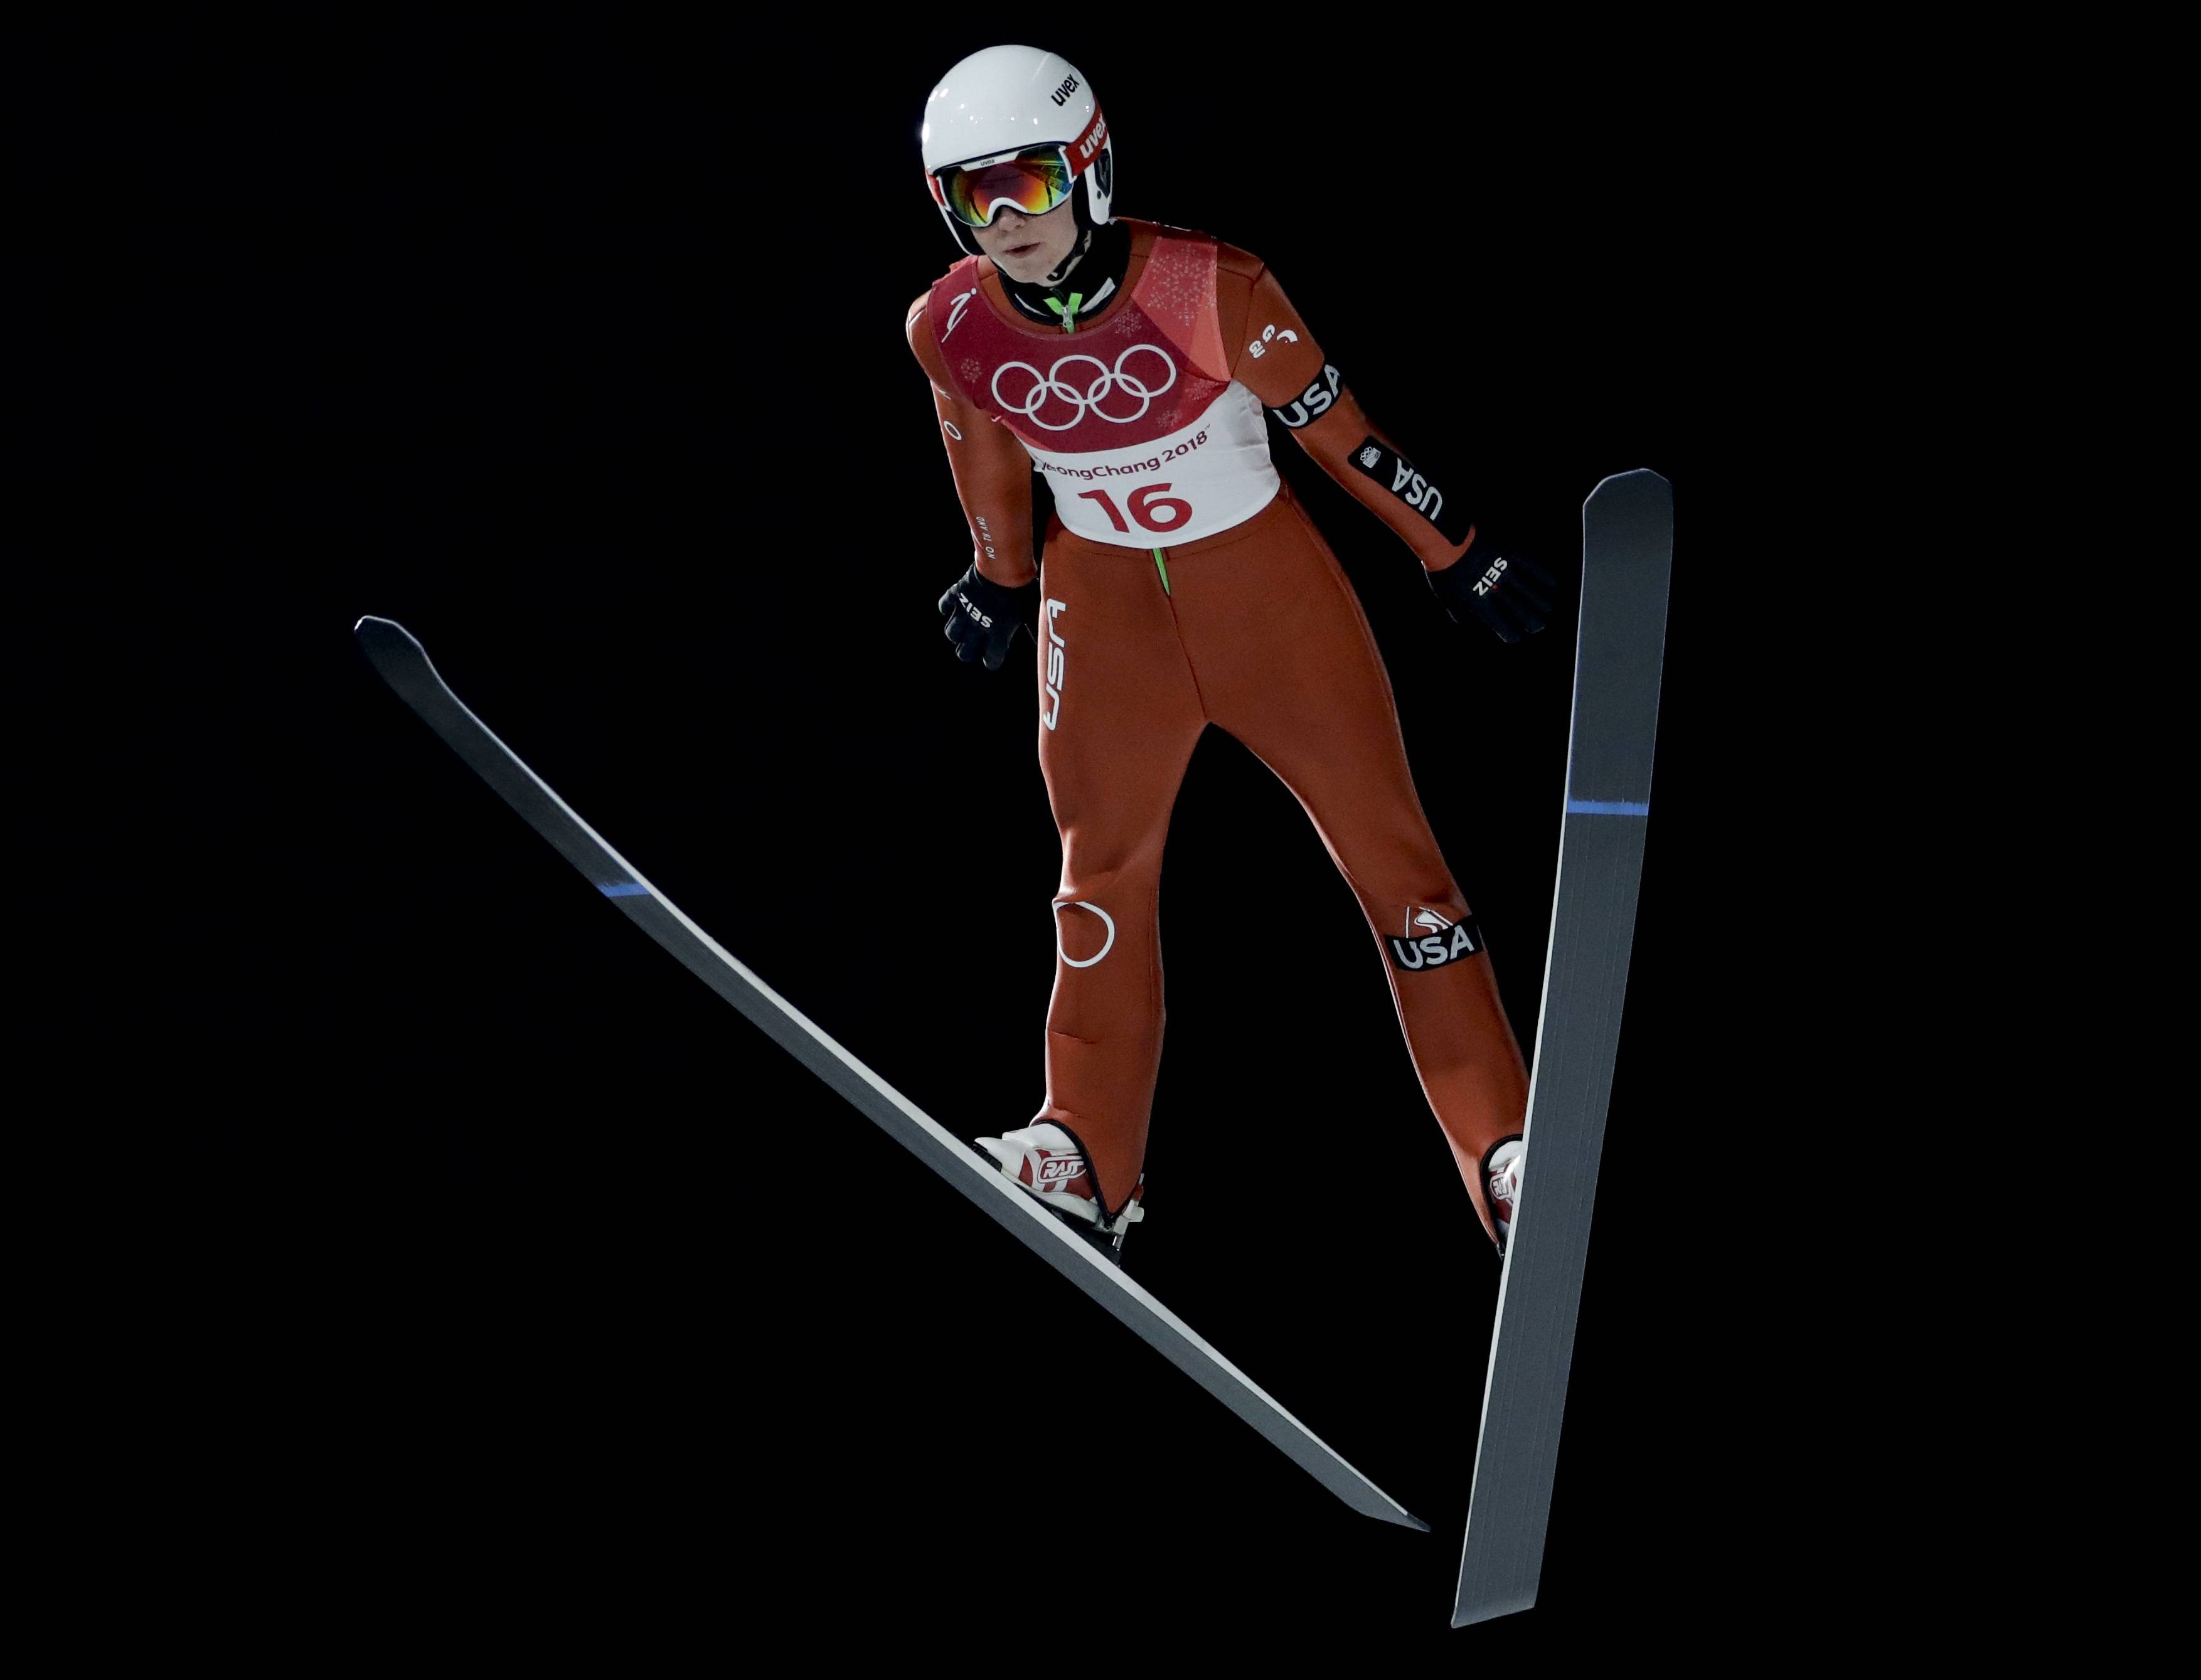 Casey Larson, a Barrington native representing the United States, jumps during the men's normal hill individual ski jumping trial round for qualification on Thursday at the 2018 Winter Olympics in Pyeongchang, South Korea.